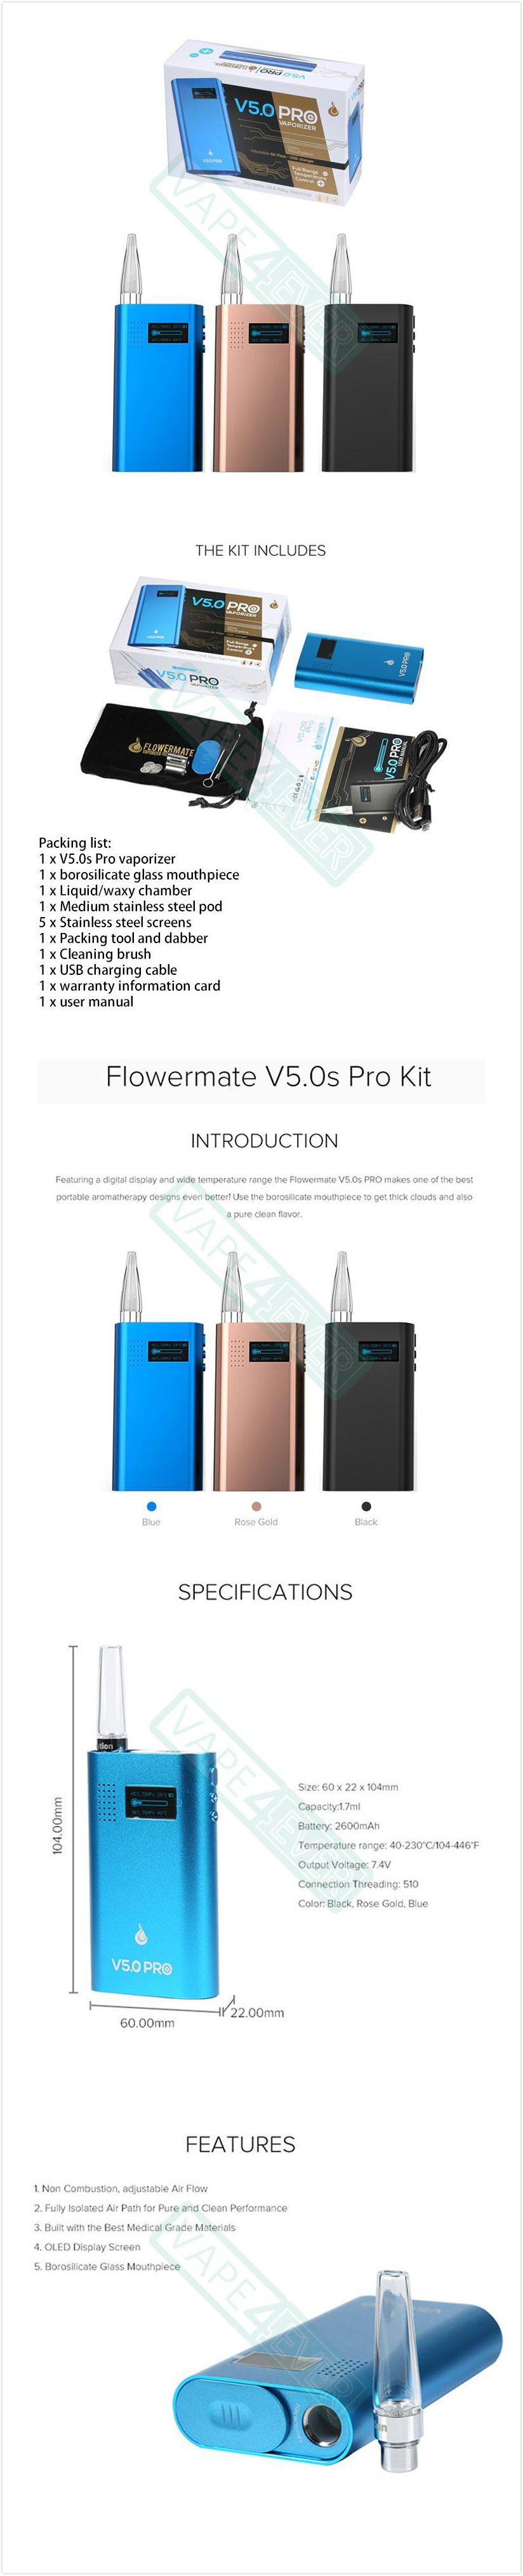 Flowermate V5.0s Pro Vaporizer Kit LG 2600mAh Battery Included Herb/Concentrate Pod Instruction